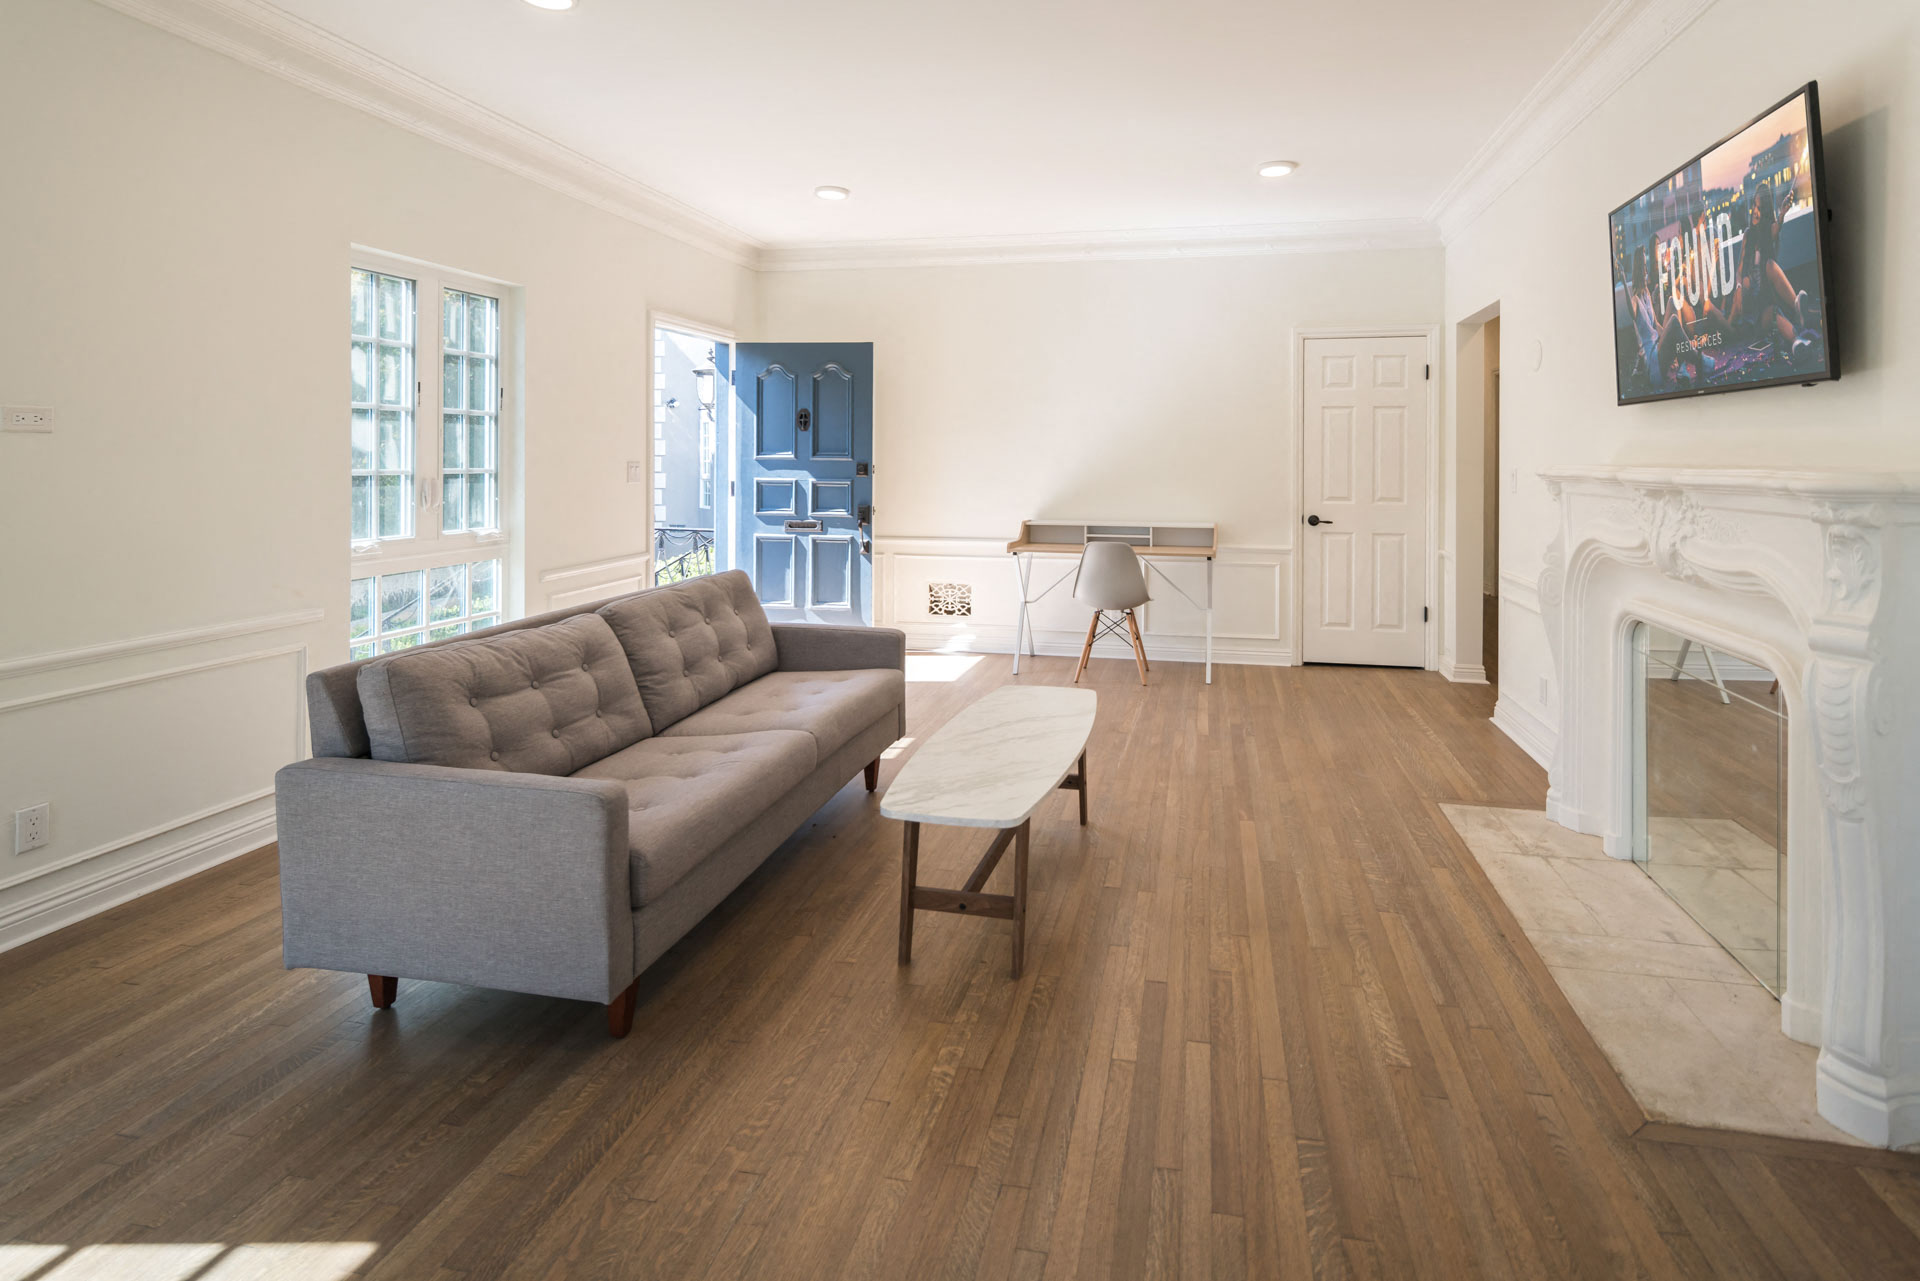 rent cheap apartments in los angeles ca from 900 rentcaf rh rentcafe com renting apartment los angeles california housing rentals in los angeles